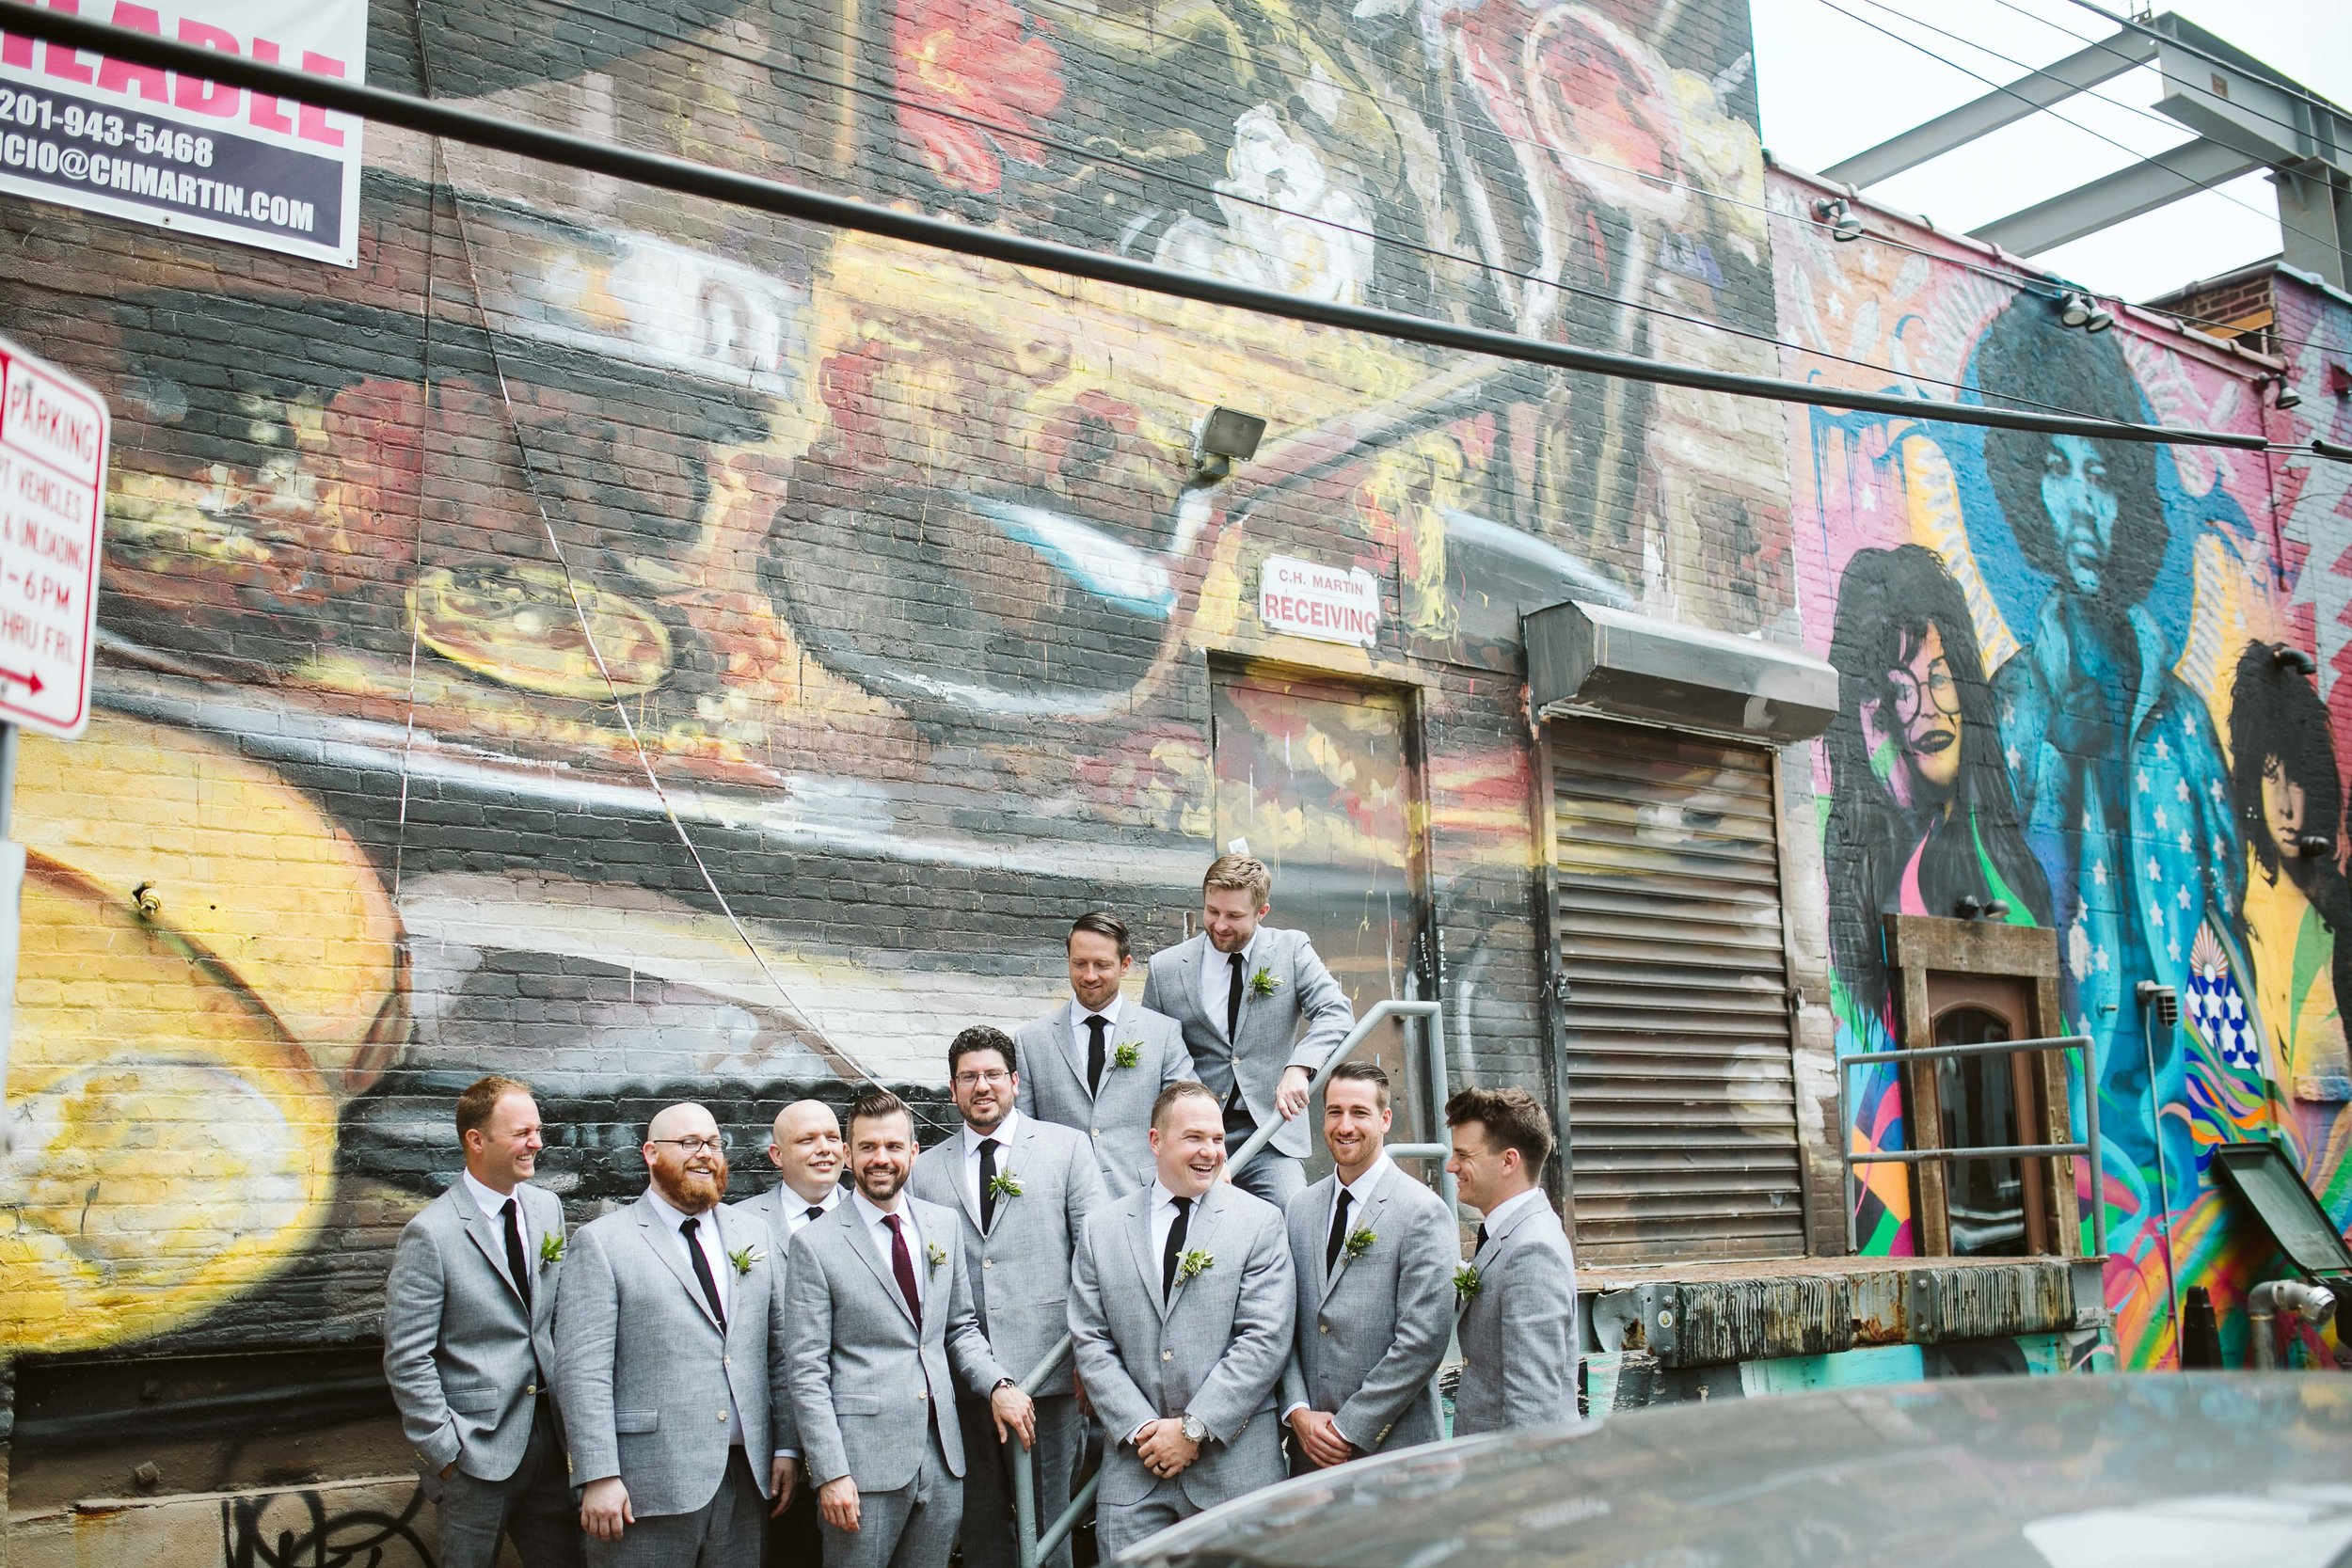 The groom and groomsman walking to the wedding in their gray suits by a graffiti wall at this Battello Wedding in Jersey City, NJ